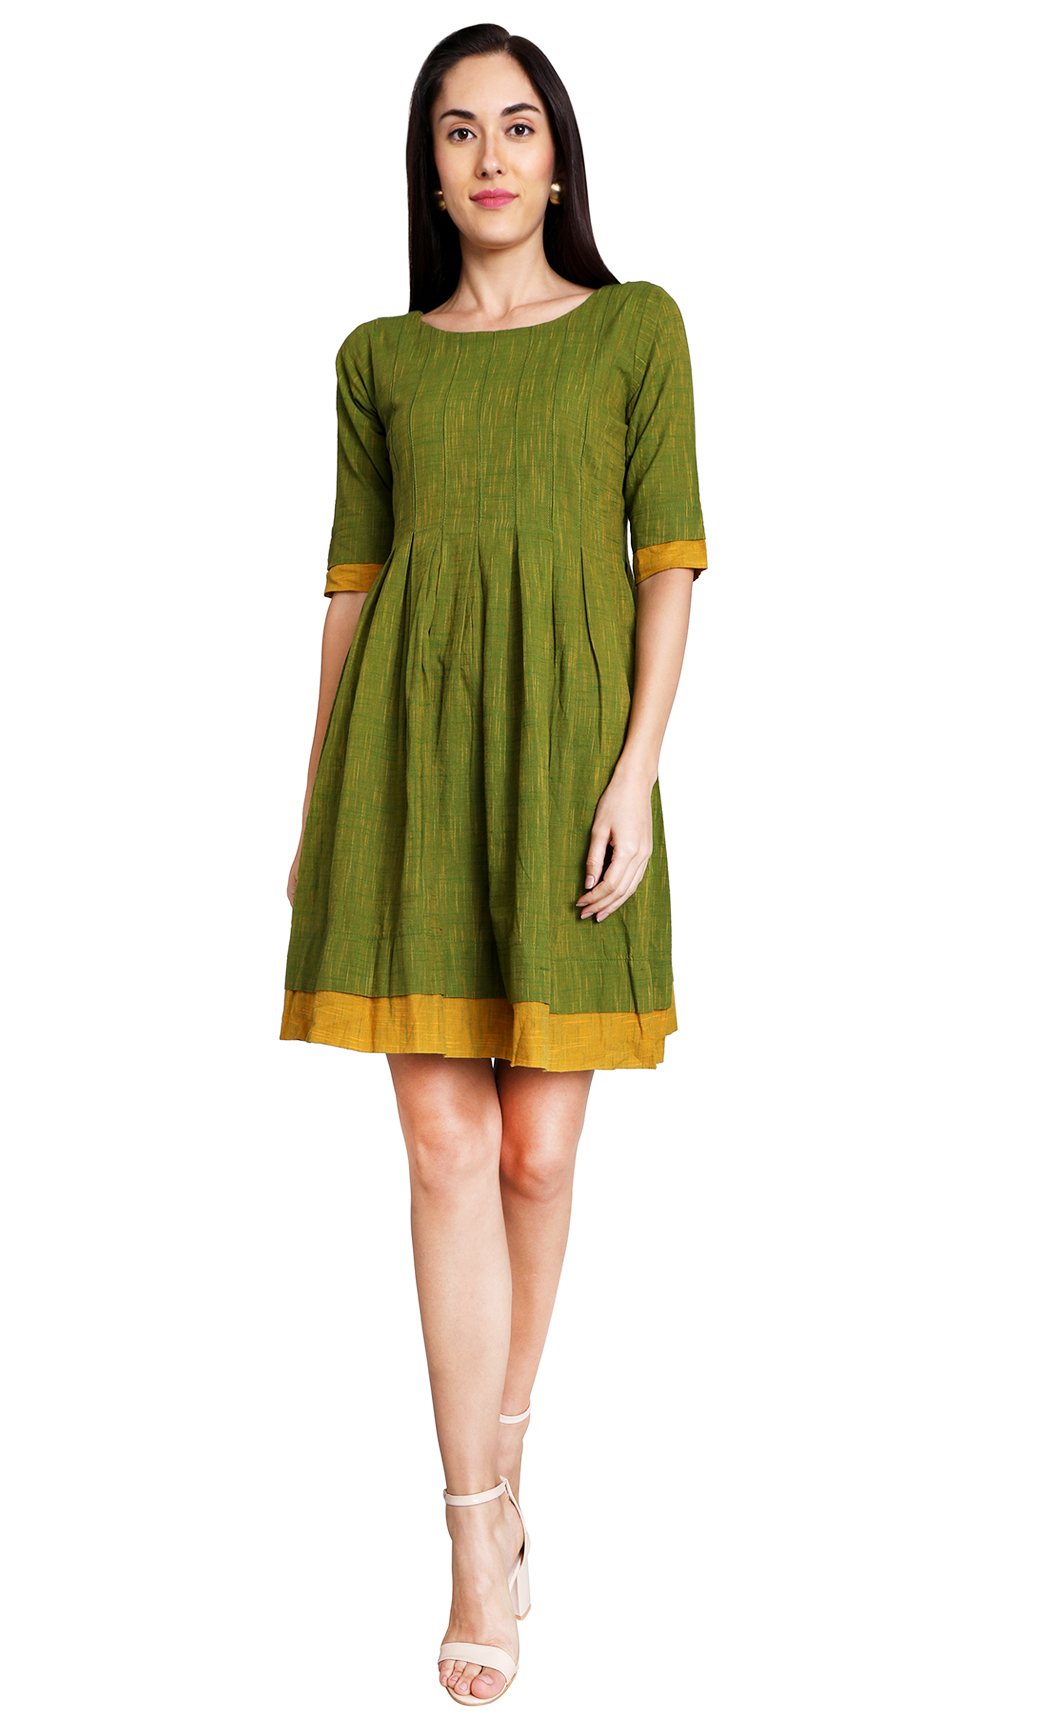 Olive green and Mustard Pleated Dress. Buy Online